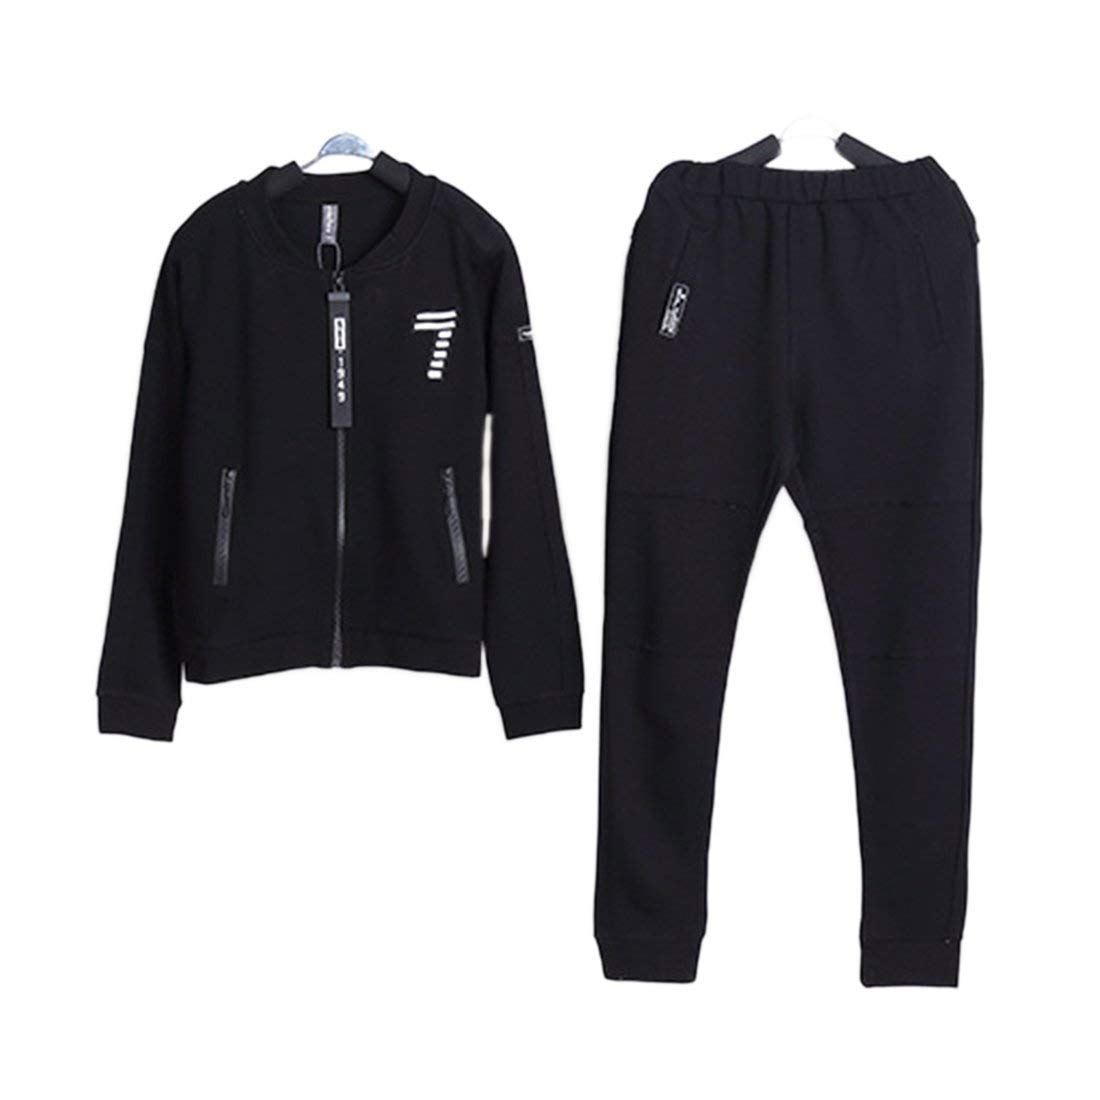 258416846e0d5 Get Quotations · YIBLBOX Boys Girls Kids Full Zip Up Tracksuit Gym Suit  Jogging Joggers Jacket and Pant Set